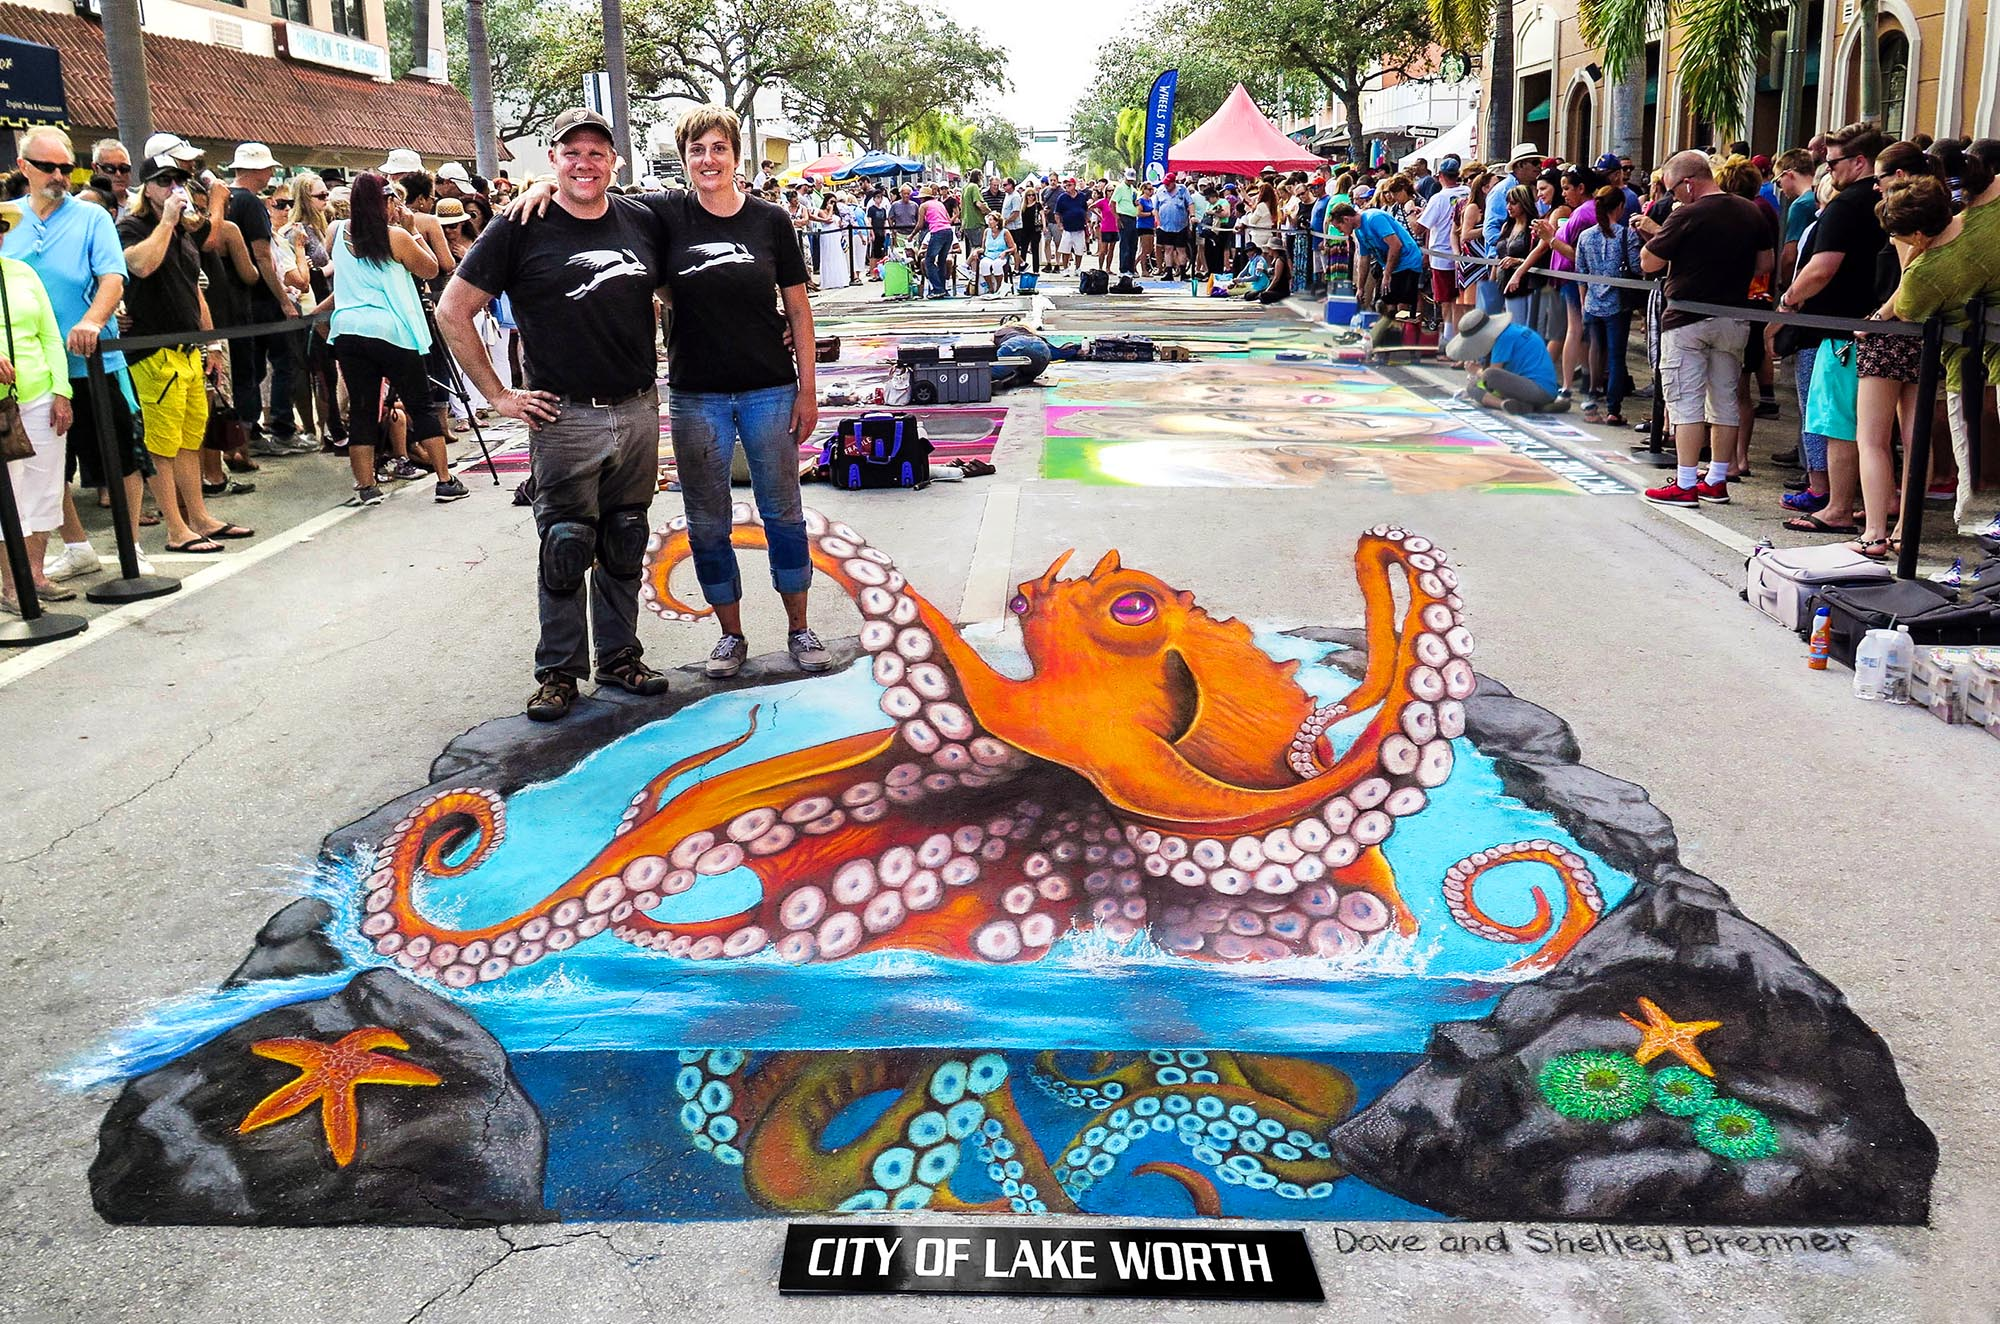 2017 Lake Worth Street Painting Festival, Lake Worth, FL